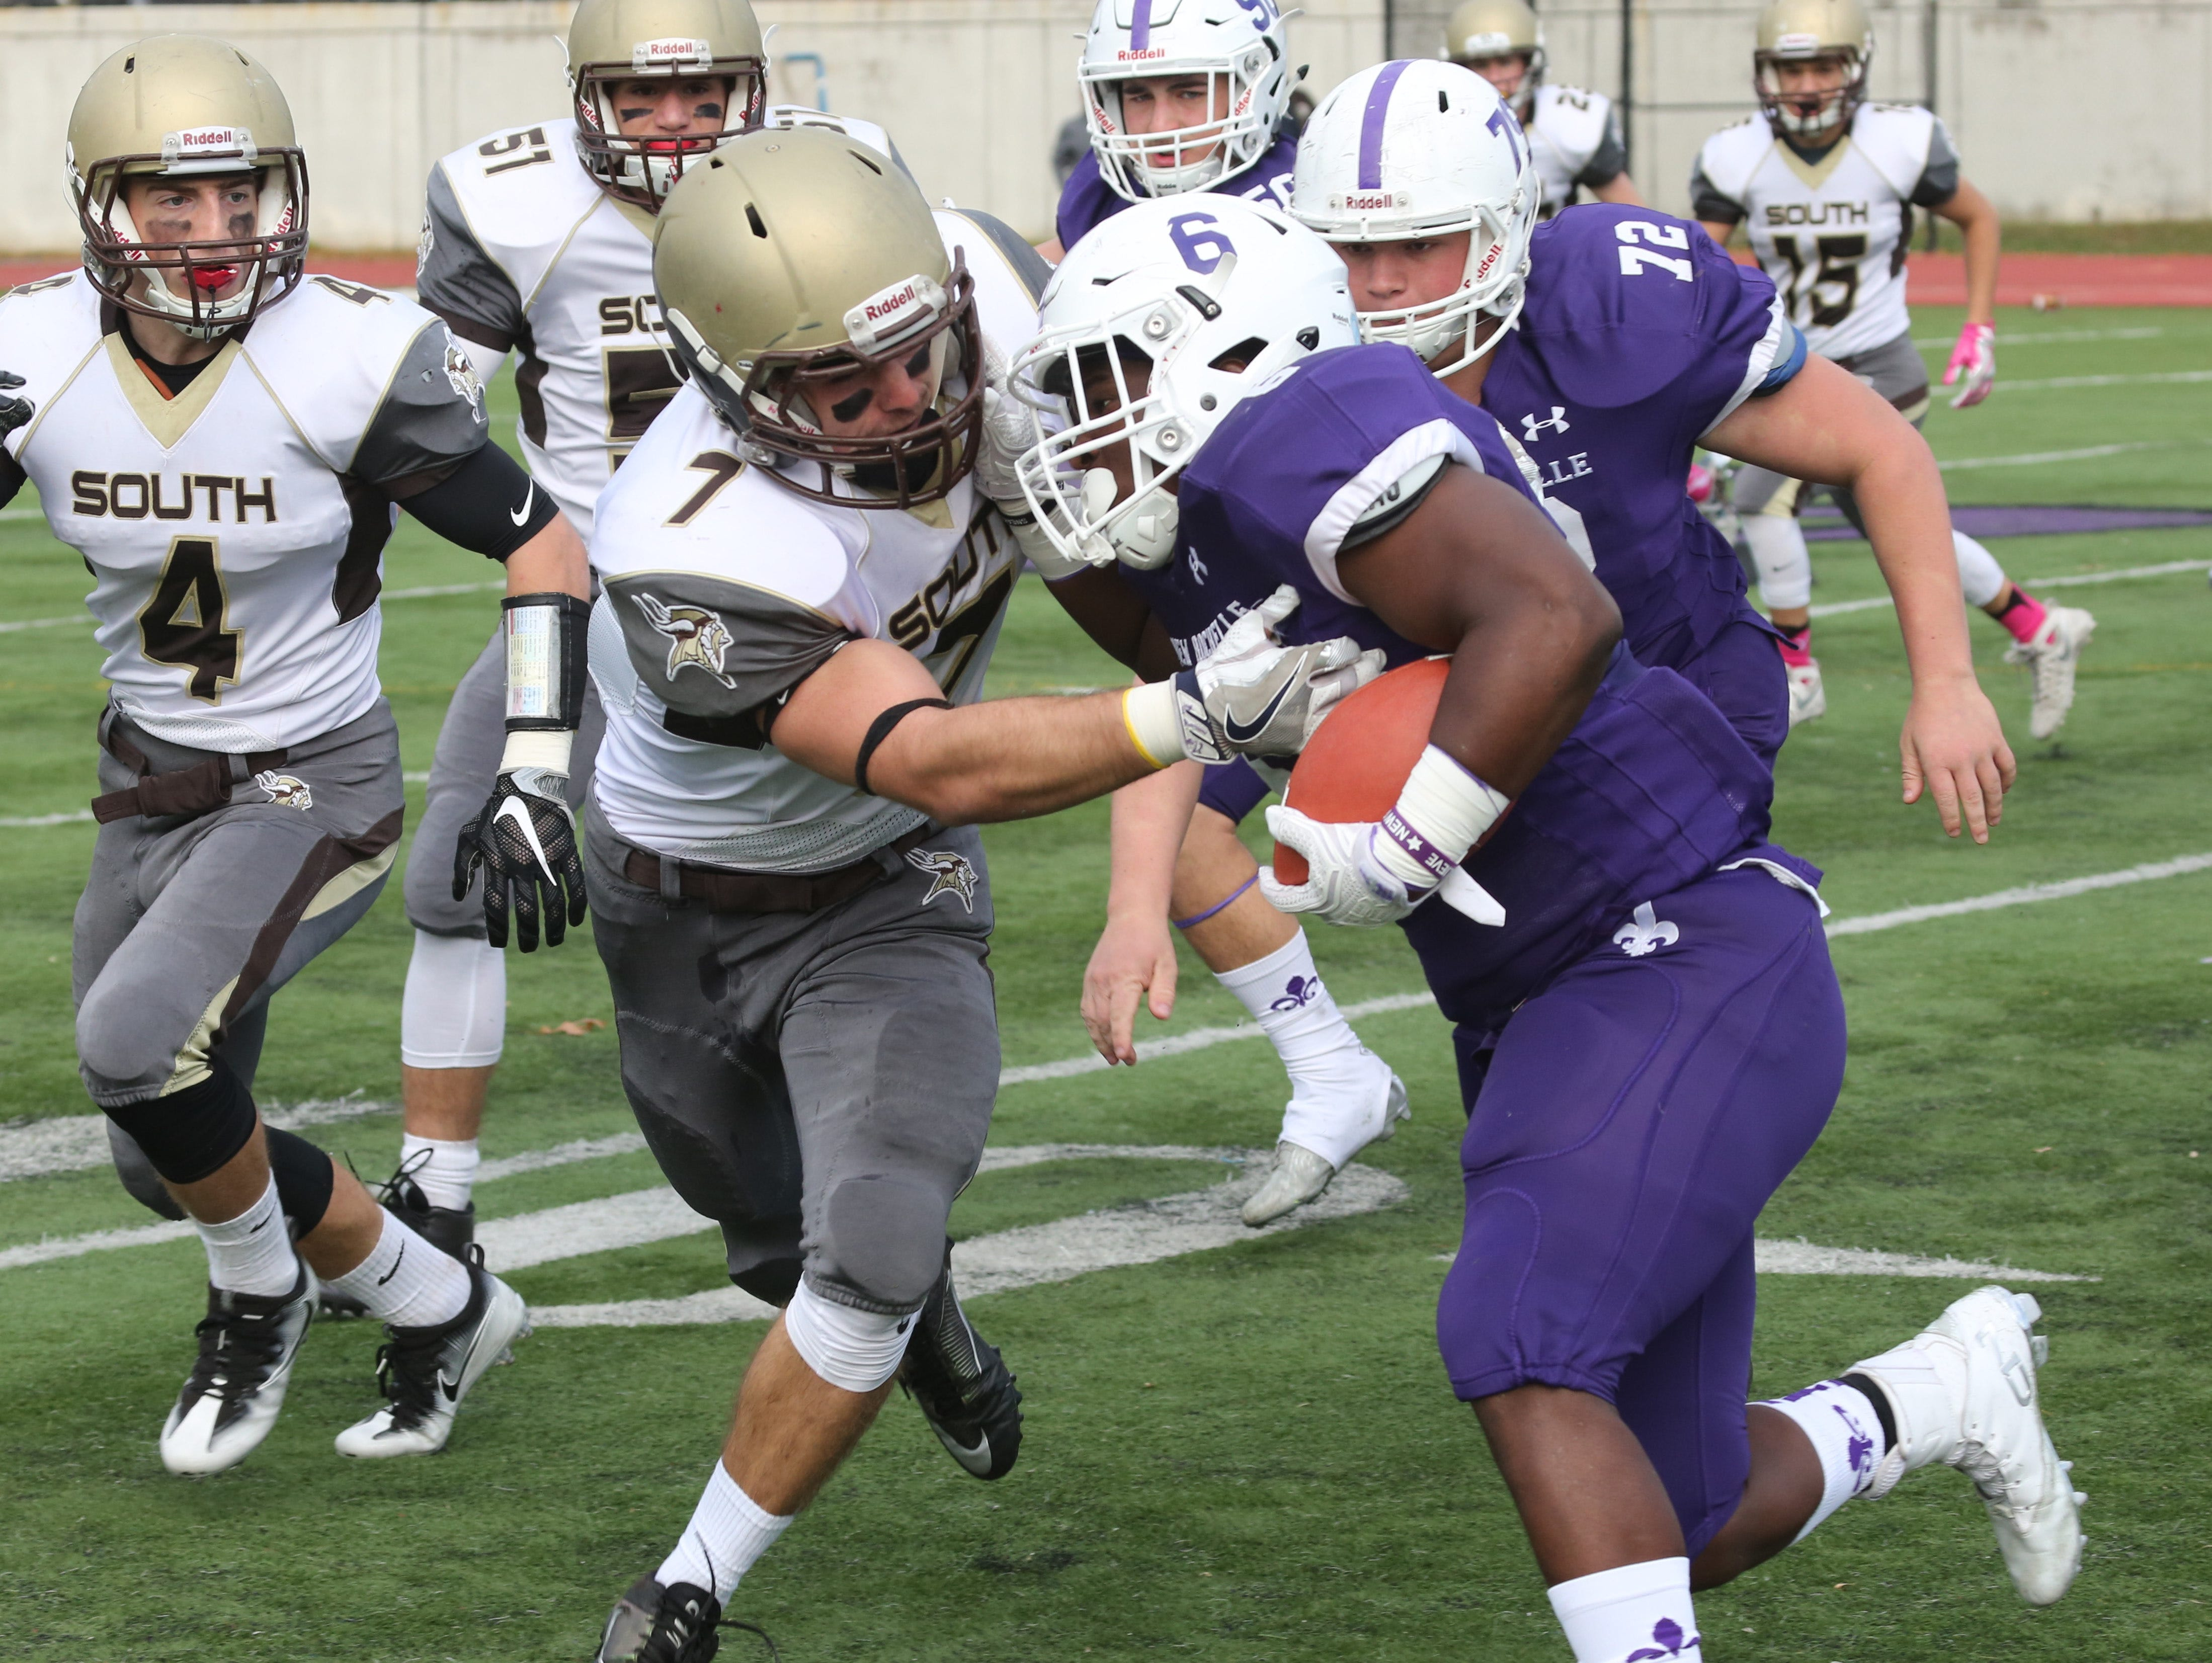 New Rochelle's Jared Baron is stopped by Clarkstown South's Samuel Mistretta during their Class AA semifinal in New Rochelle Oct. 29, 2016.